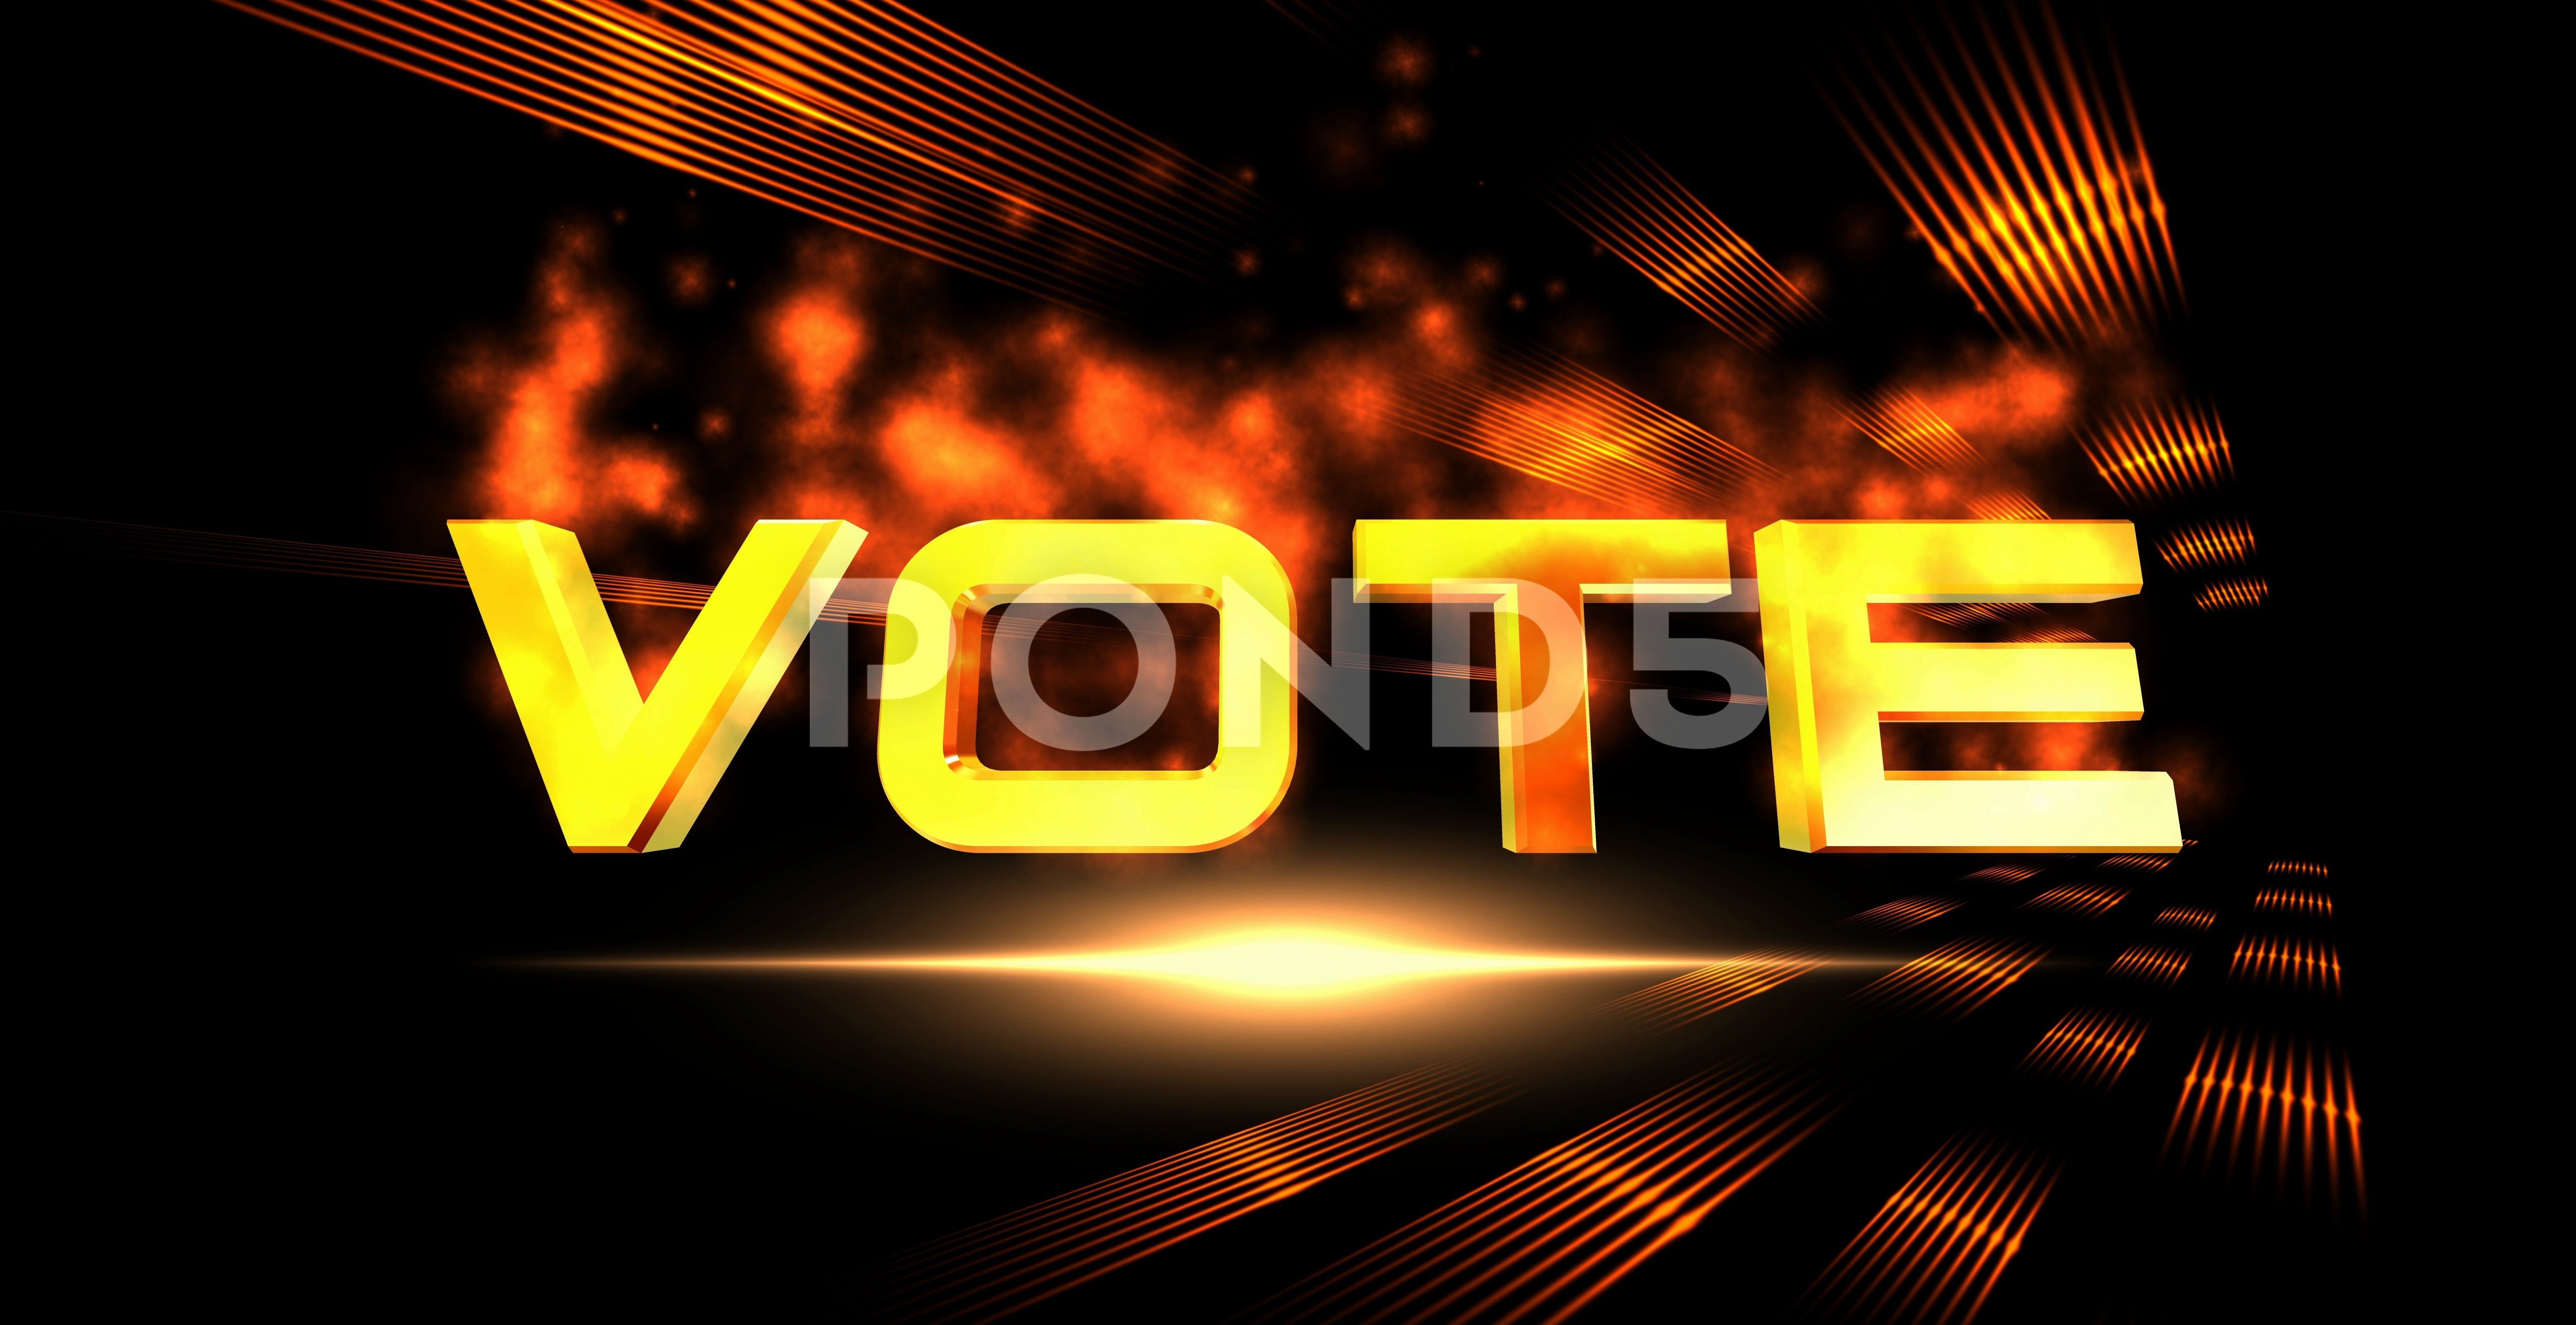 Background VOTE with Fire Effect  6K Ultra HD Stock Footage VOTEFireAbstractBackgroundAbstract Background VOTE with Fire Effect  6K Ultra HD Stock Footage VOTEFireAbstrac...